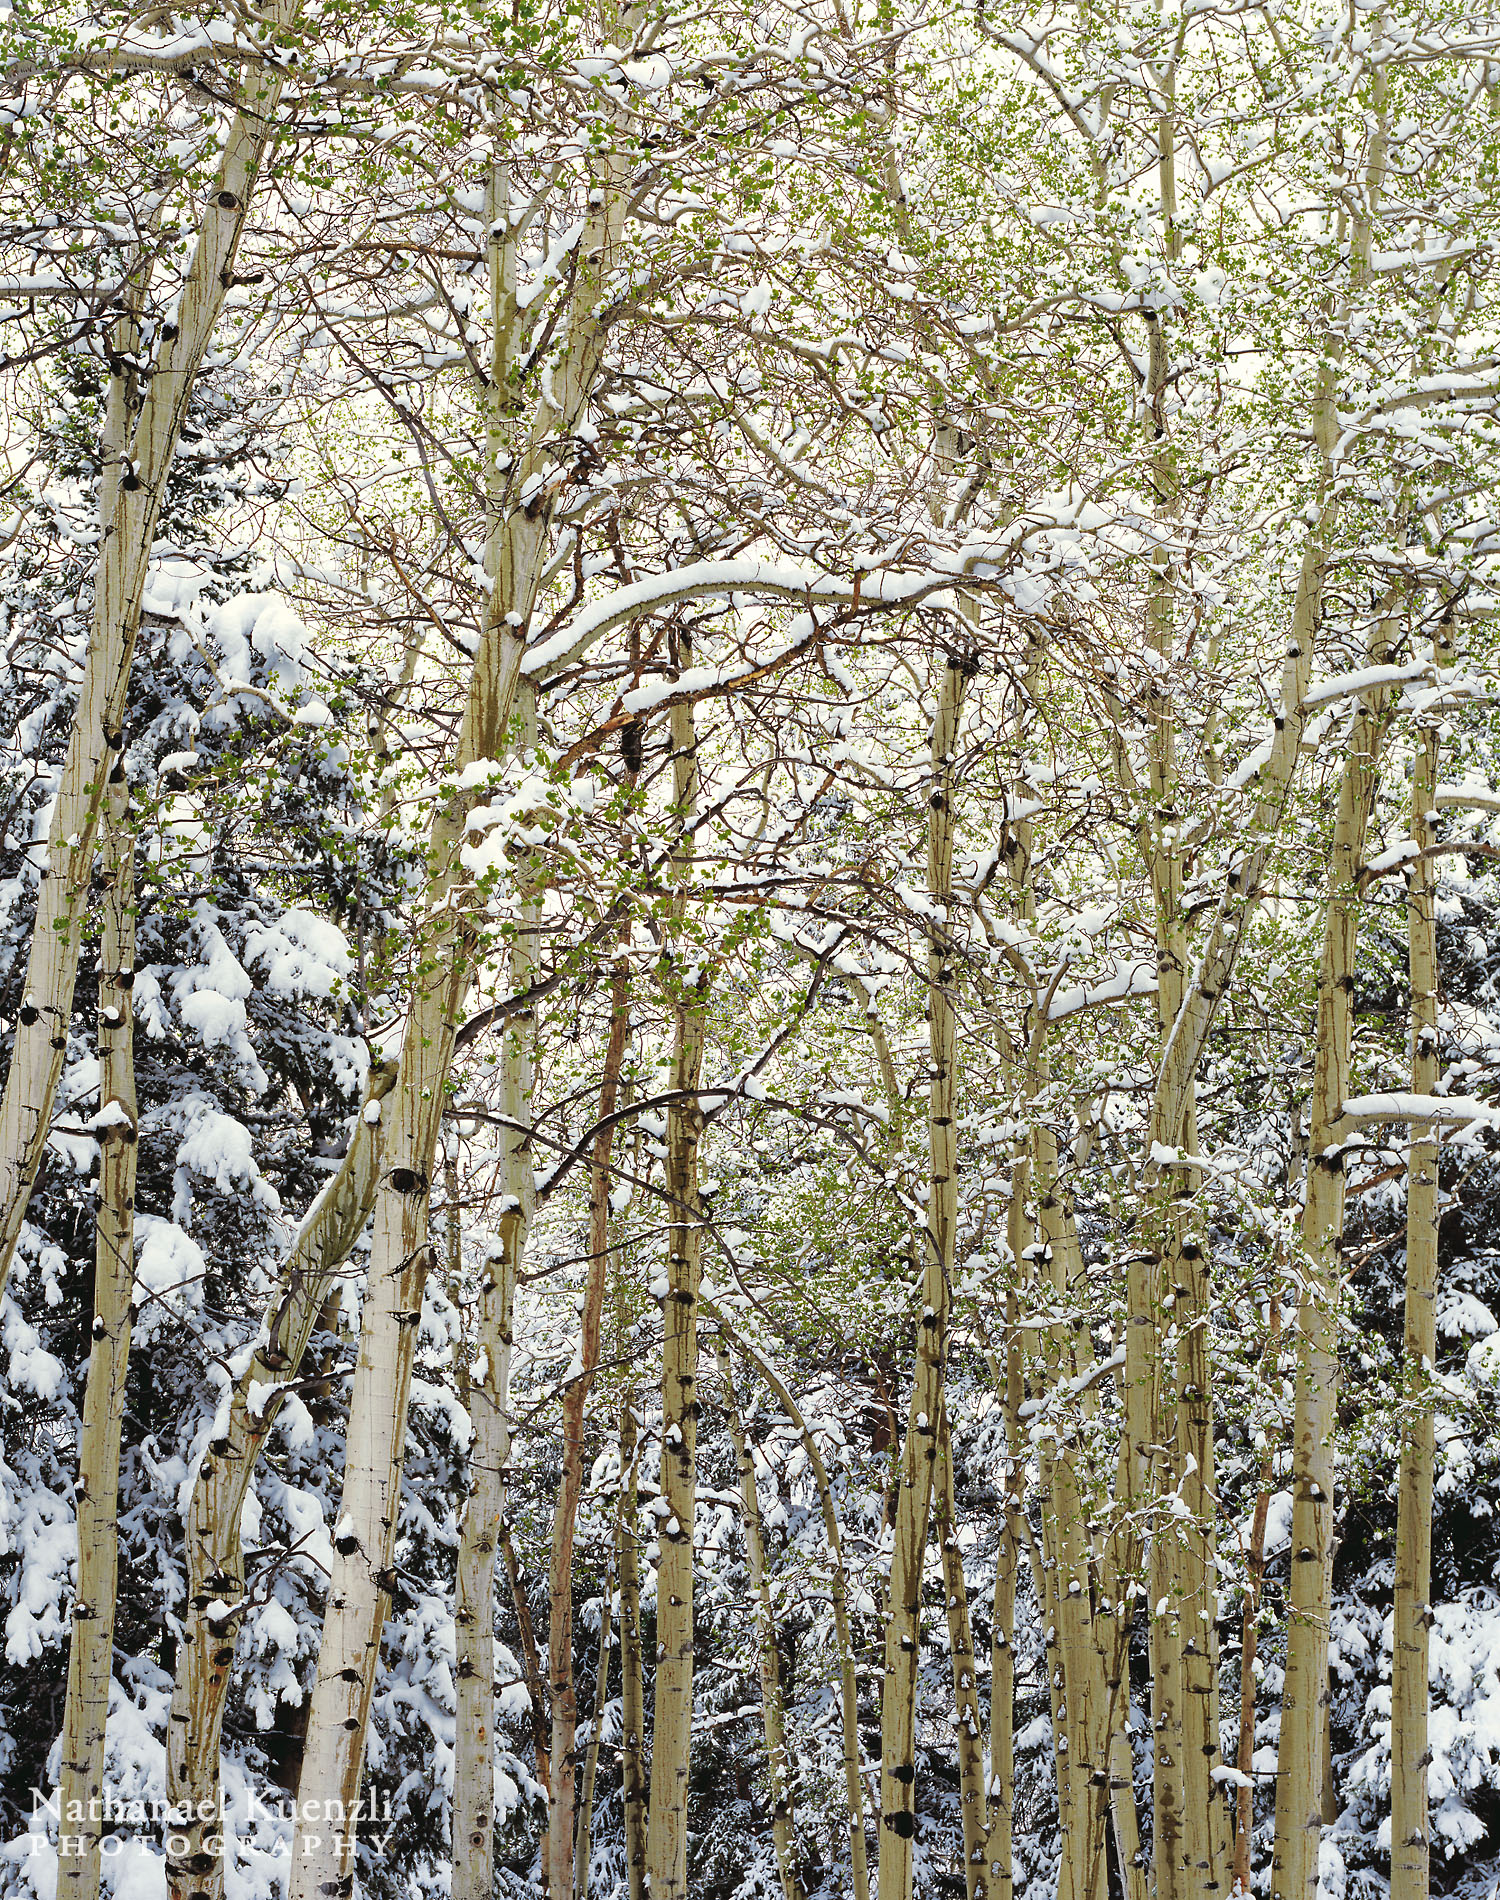 Spring Snow, Horseshoe Park, Rocky Mountain National Park, Colorado, May 2004